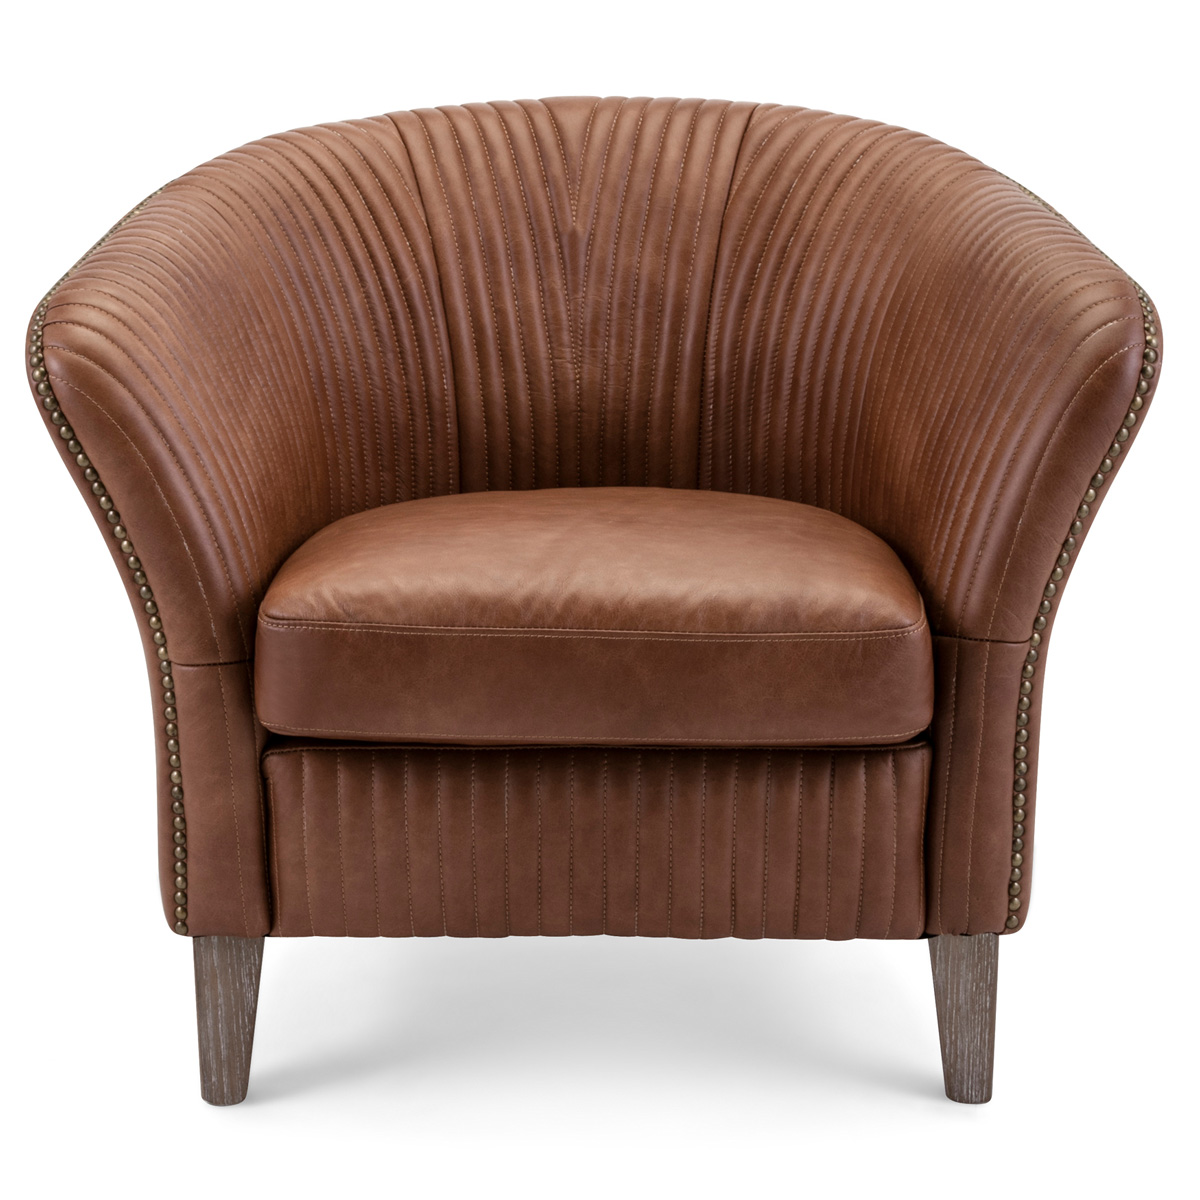 Buford Leather Chair